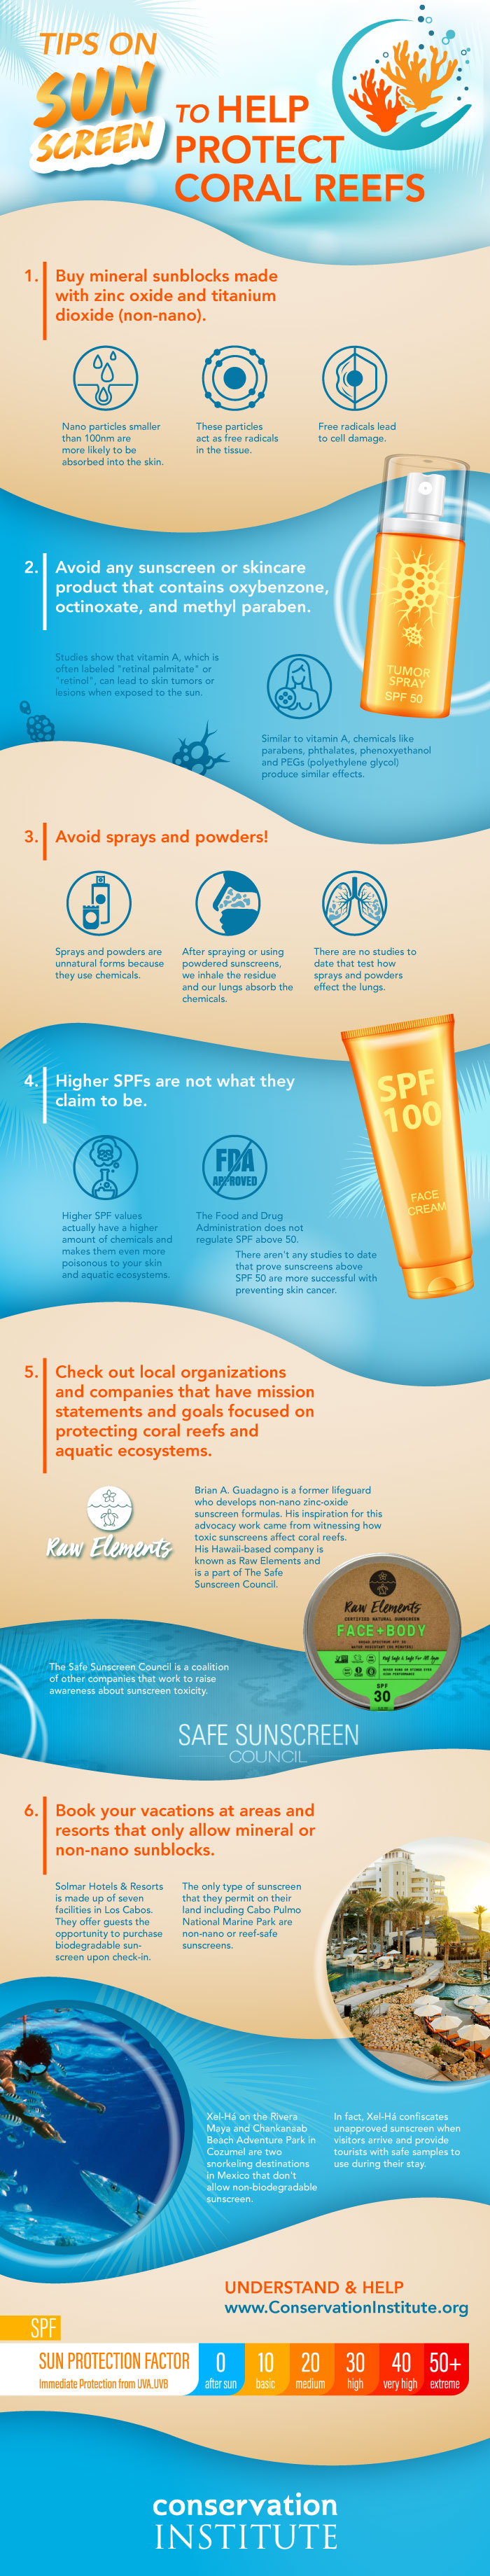 Tips on Sun Screen to Help Protect Coral Reefs